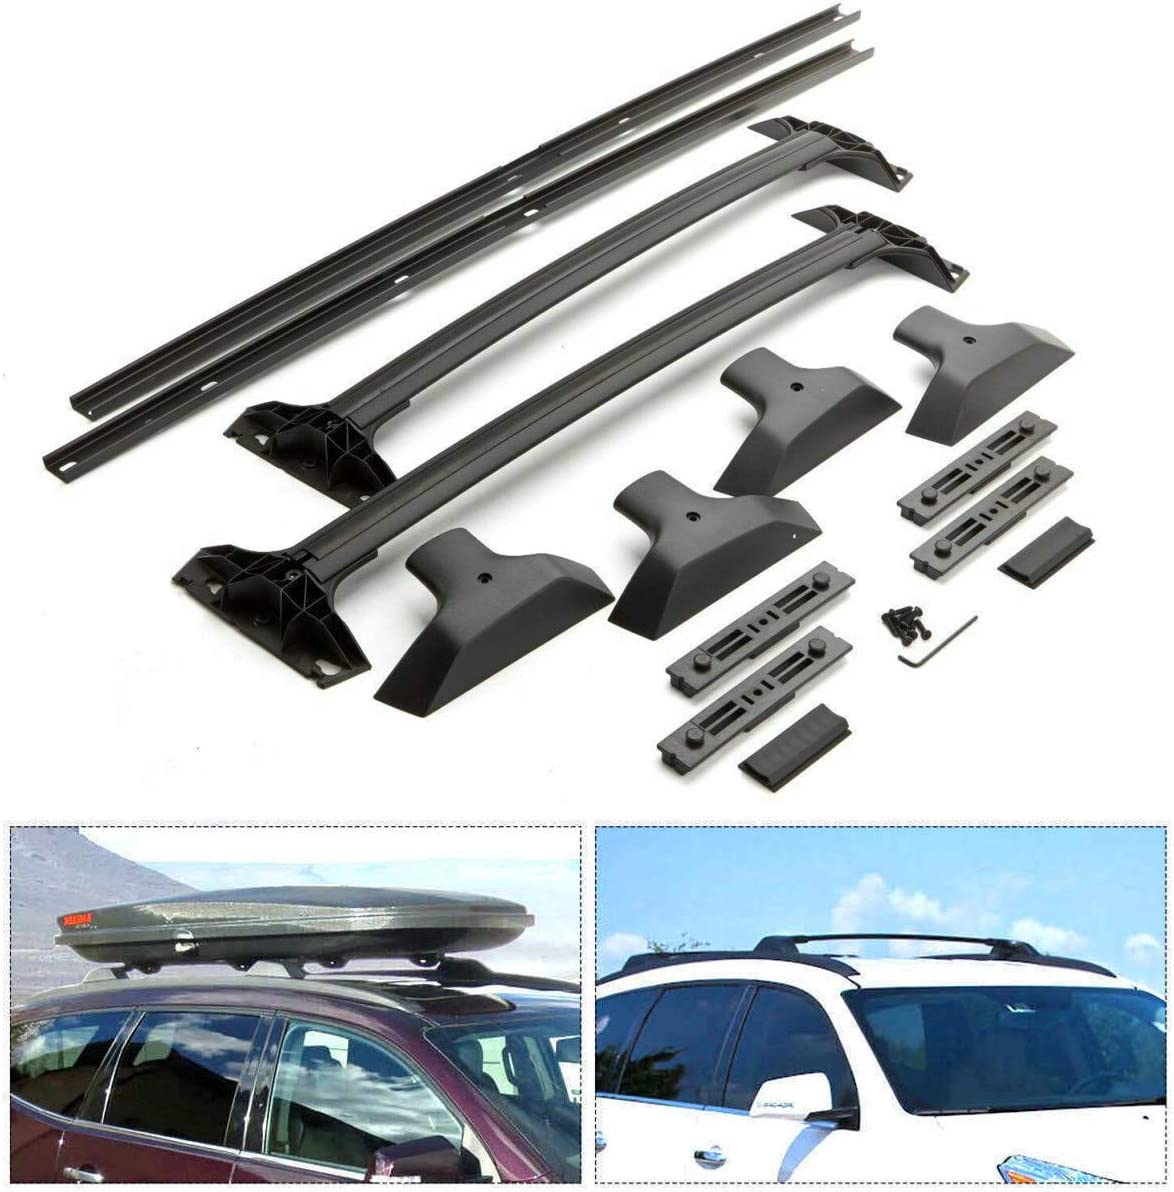 INEEDUP Cross Bars Roof Rack Fit For 2010-2017 Chevy Cruze,2006-2011 2014-2017 Chevy Impala,2006-2010 2013-2017 Chevy Malibu OE Style Bolt-On Roof Rack Rail Cross Bar Luggage Cargo Carrier,2-Pack